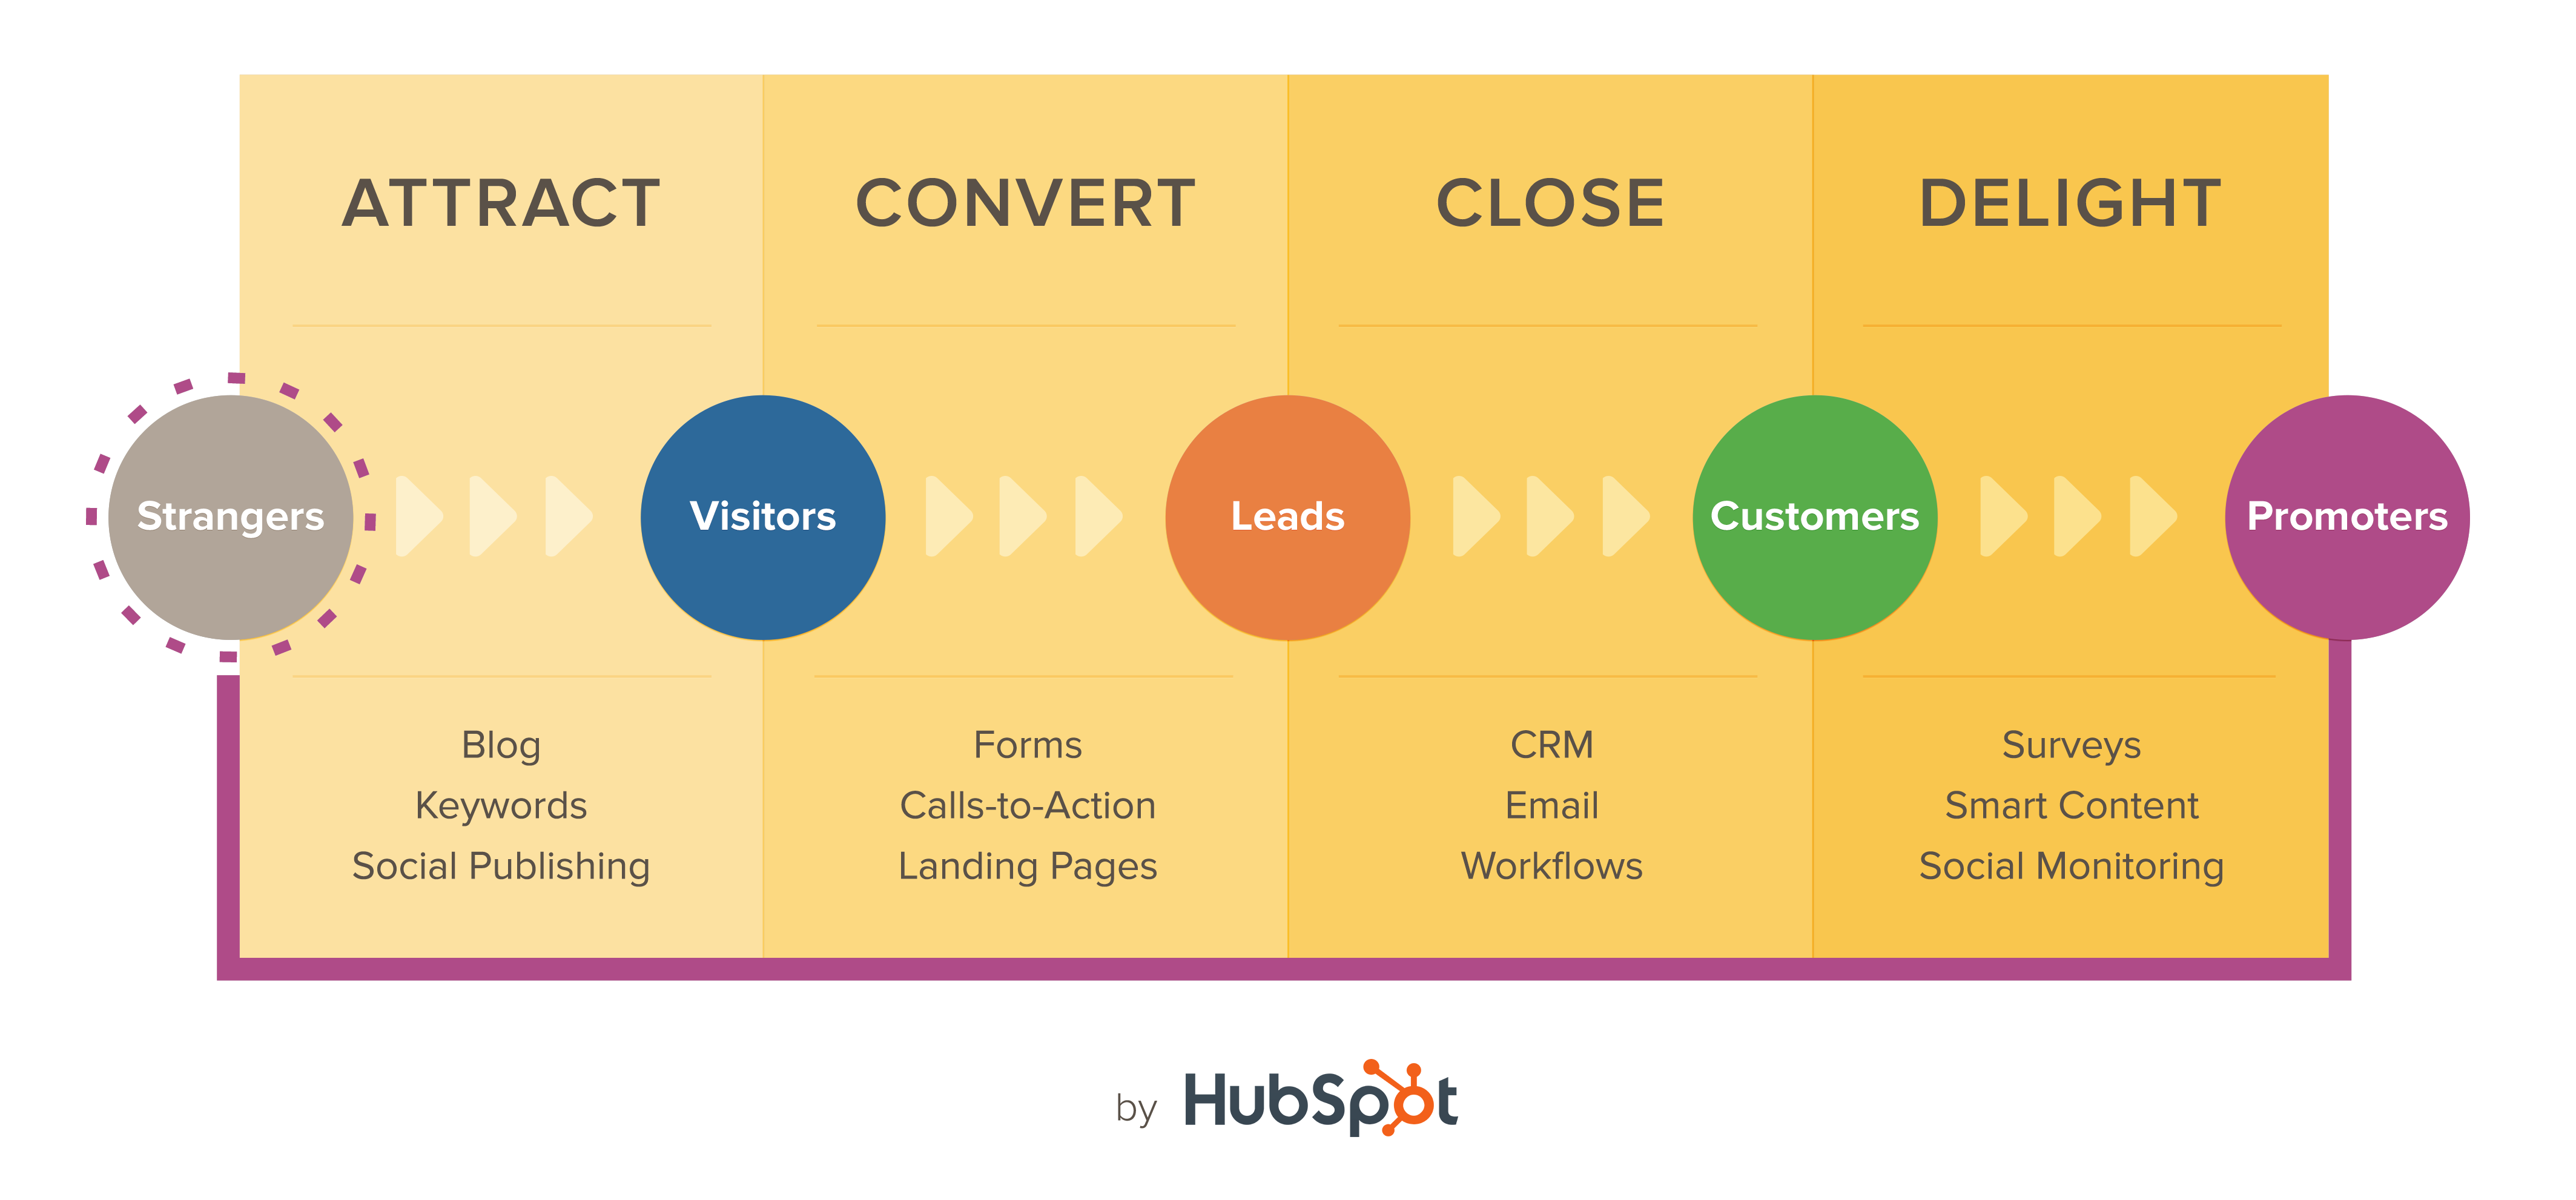 inbound marketing HubSpot analytics that profit.com